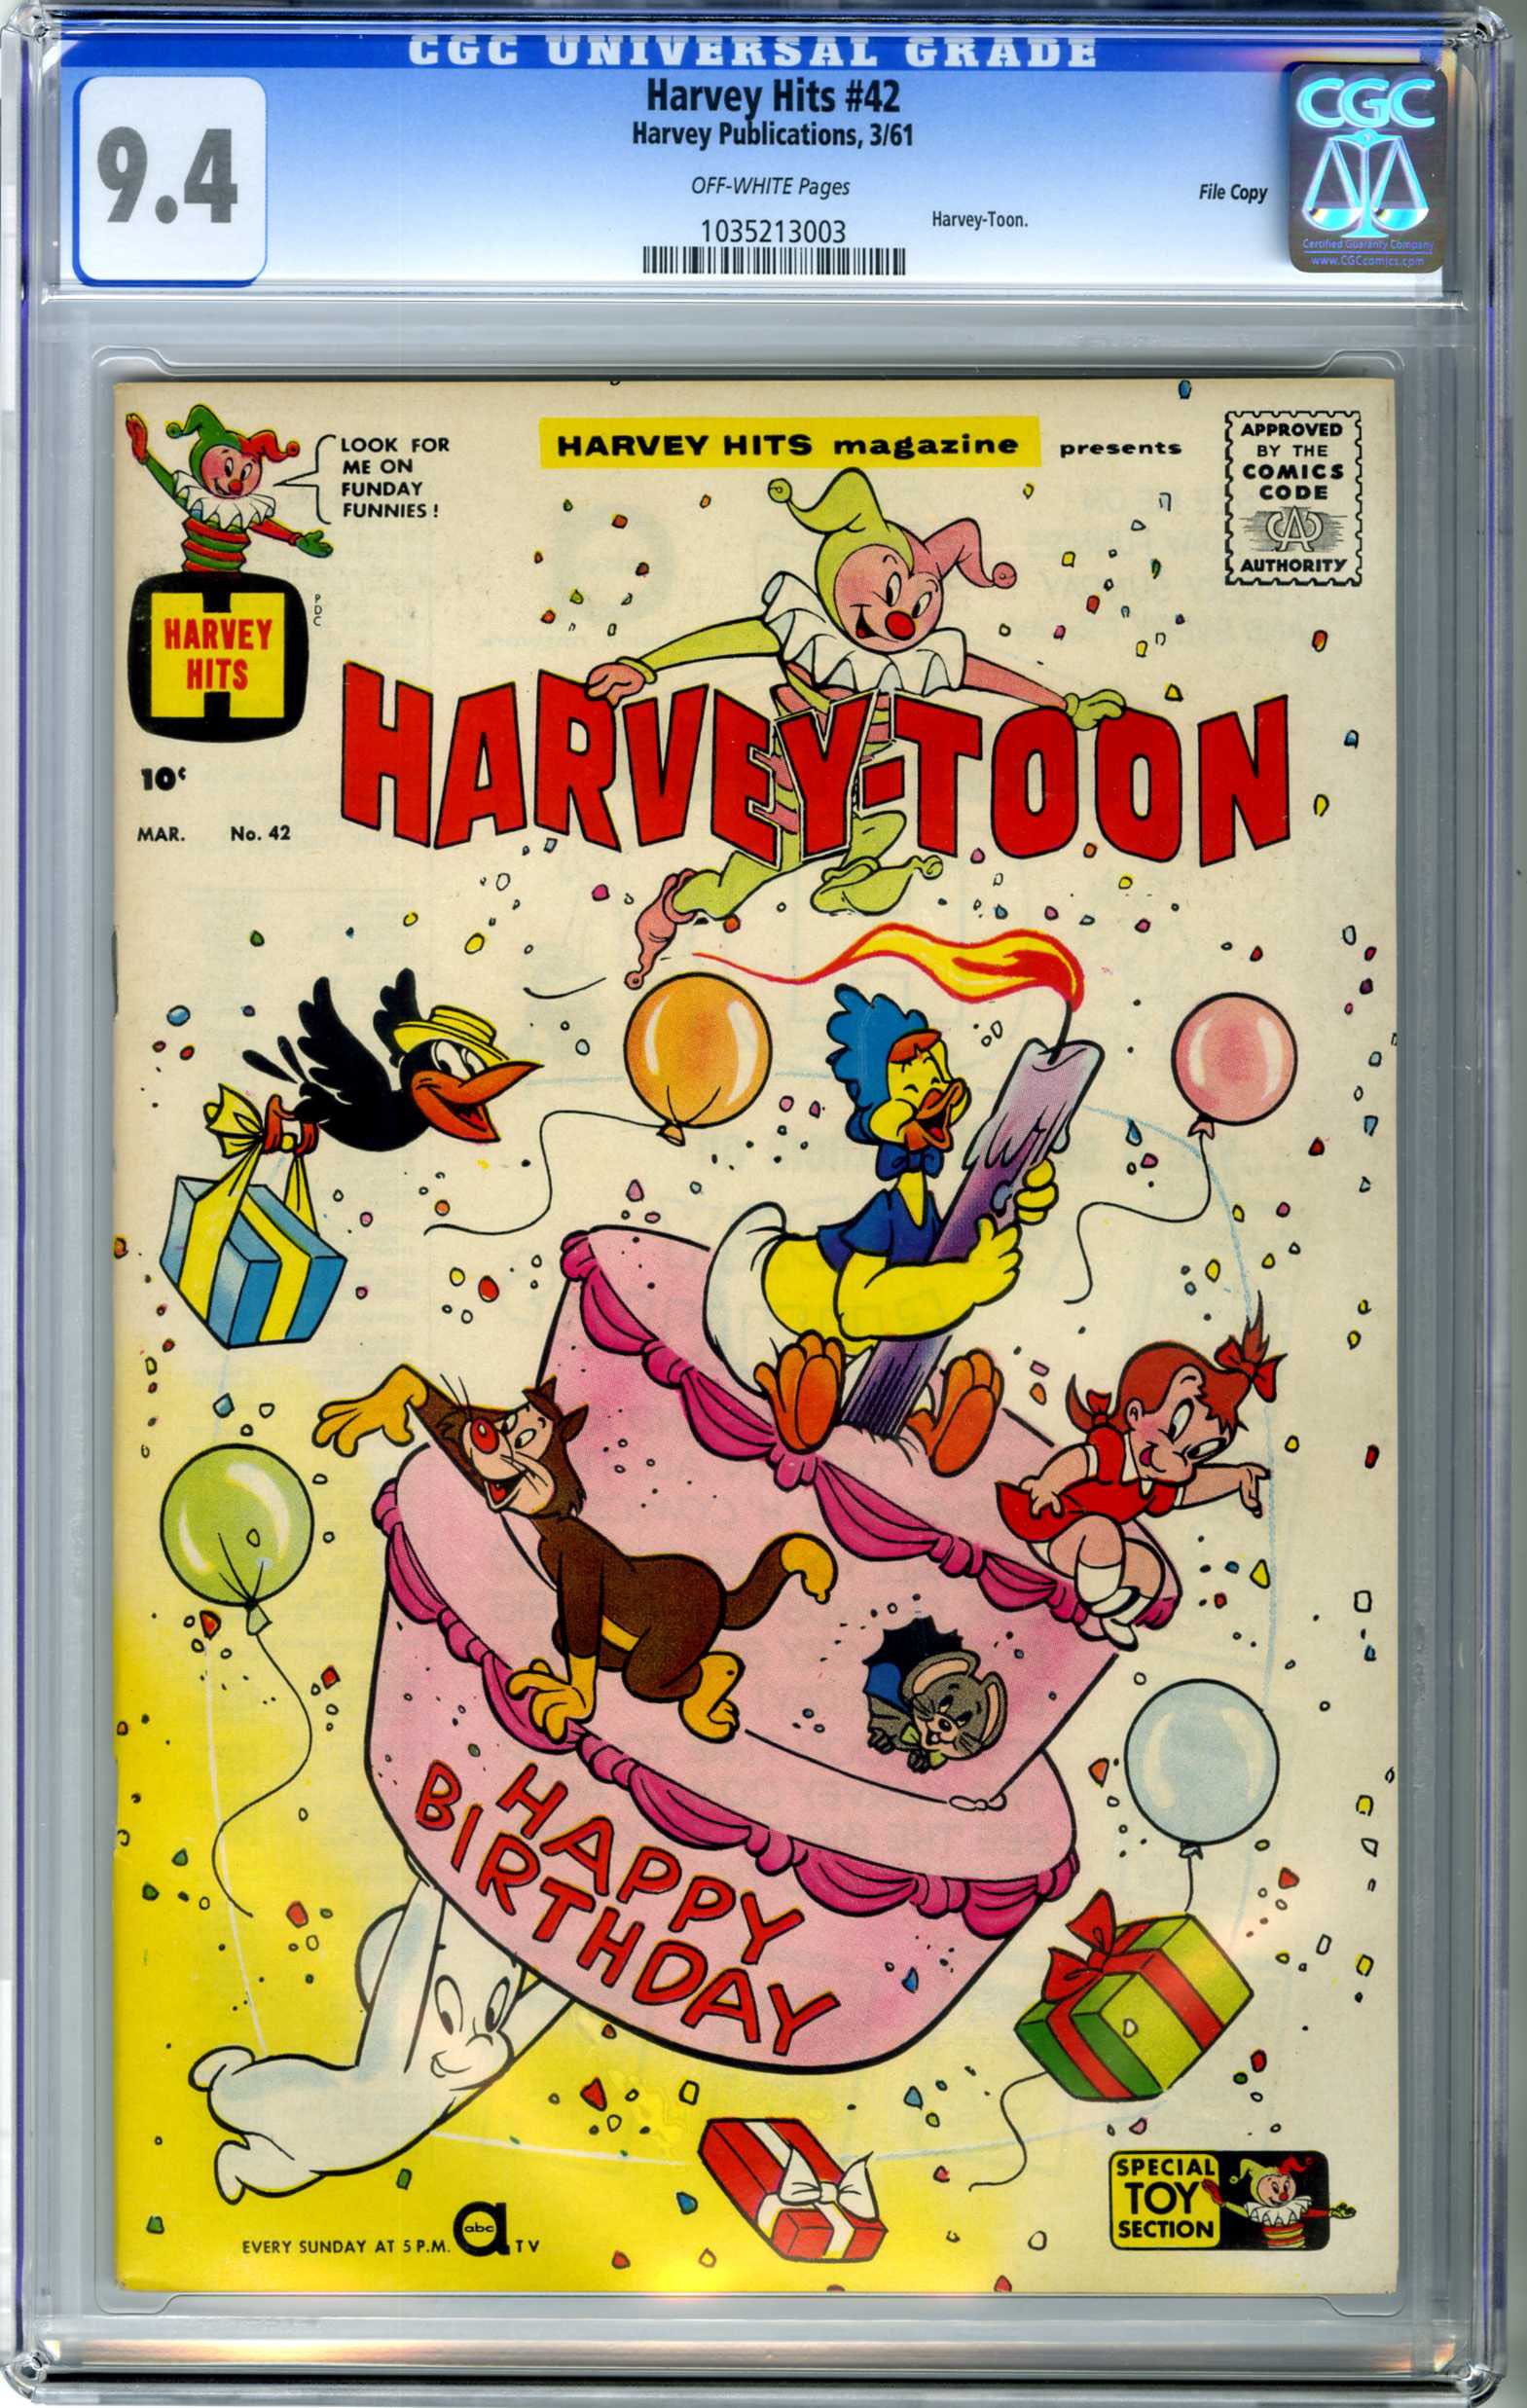 HARVEY HITS #42 (1961) CGC NM 9.4 OW Pages FILE COPY / HARVEY-TOON / CASPER